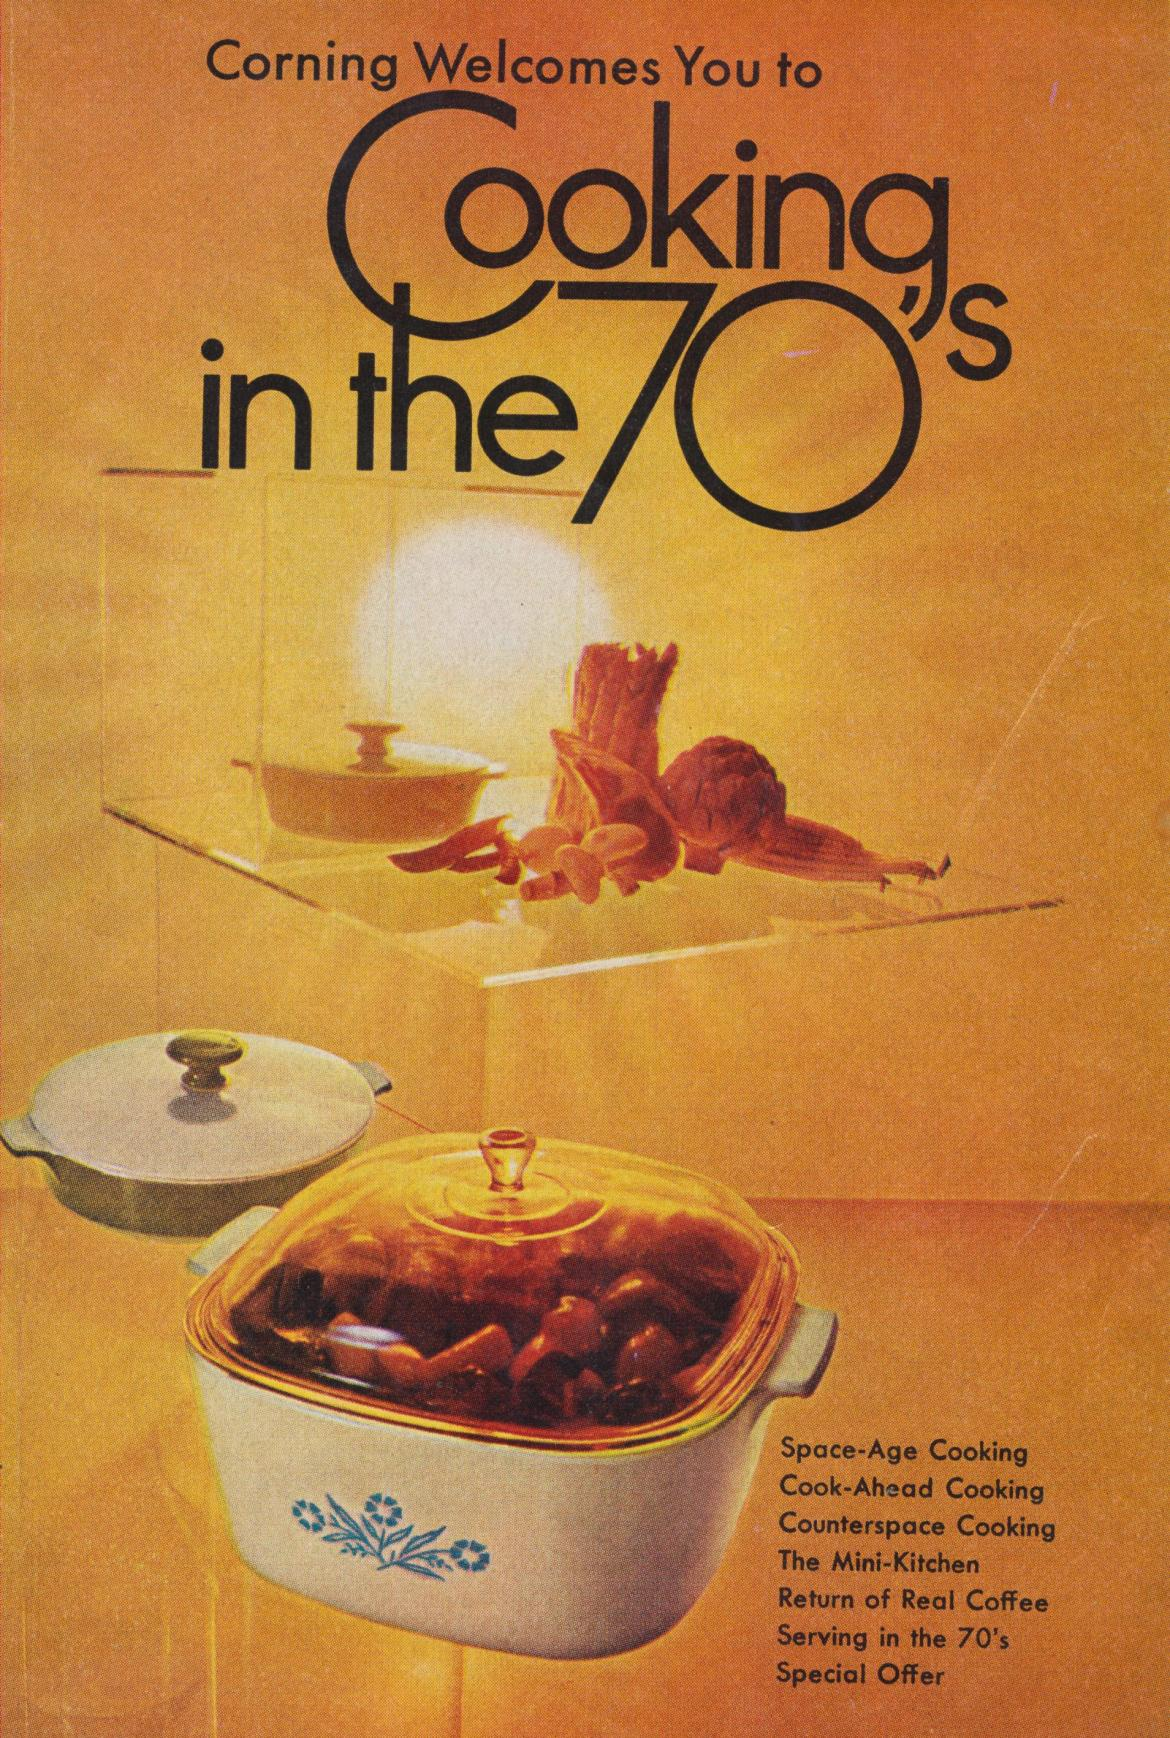 Corning Welcomes You to Cooking in the 70's